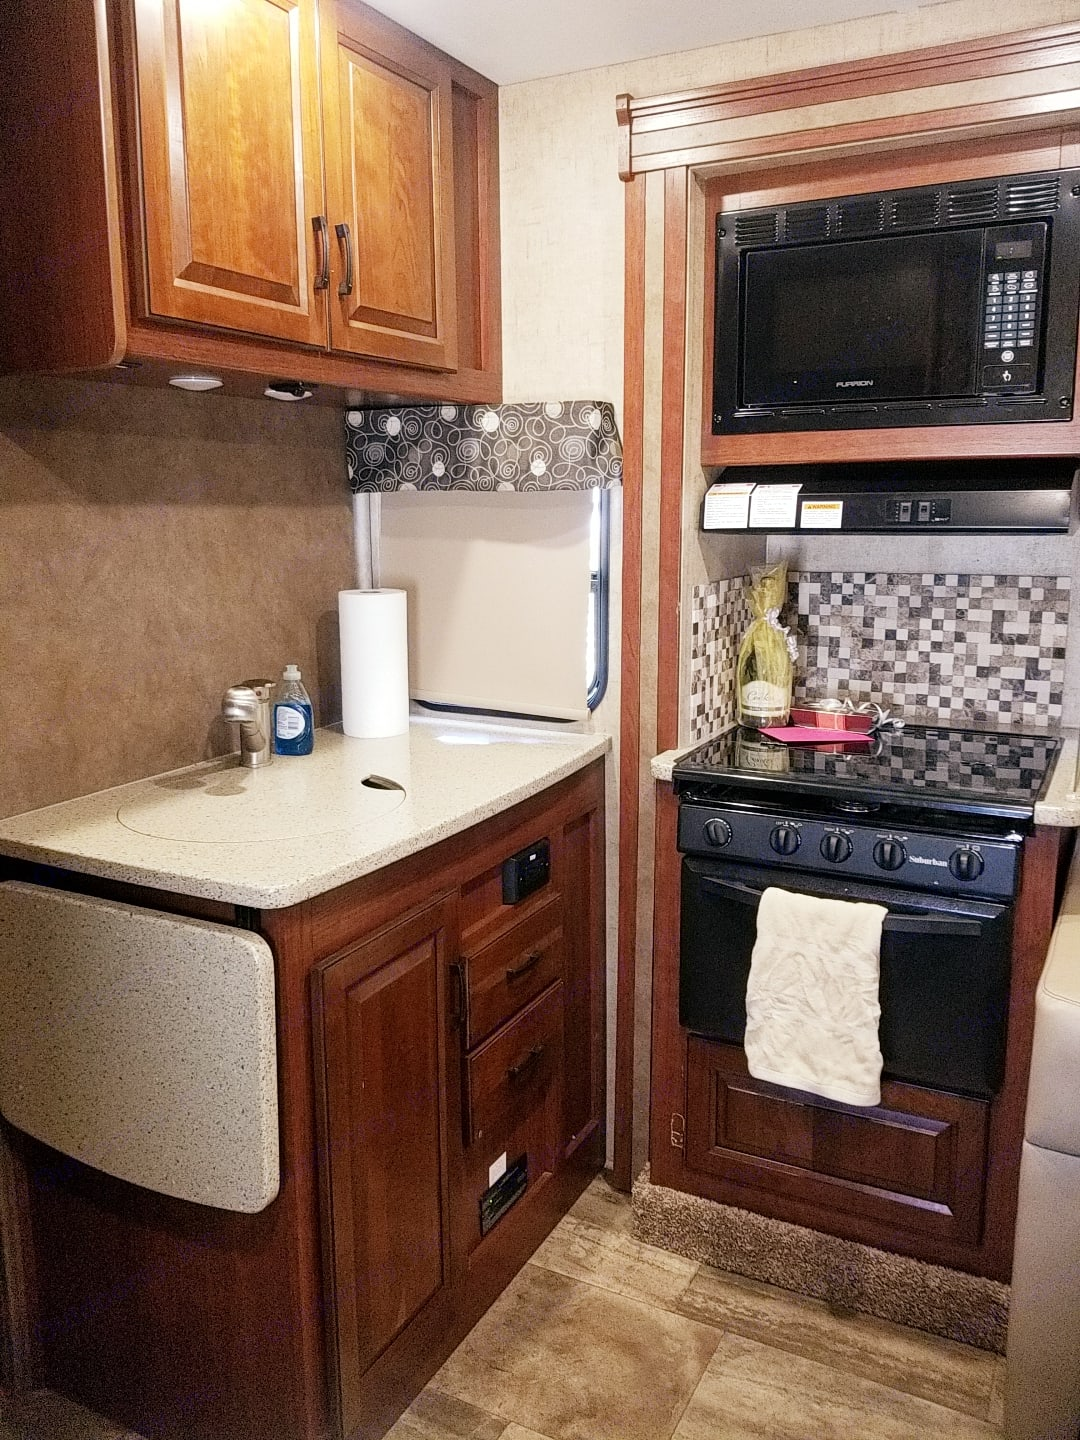 Kitchen has fold out counter space and a sink cover, when you are working on a larger meal.. Forrest River Forrester 2017